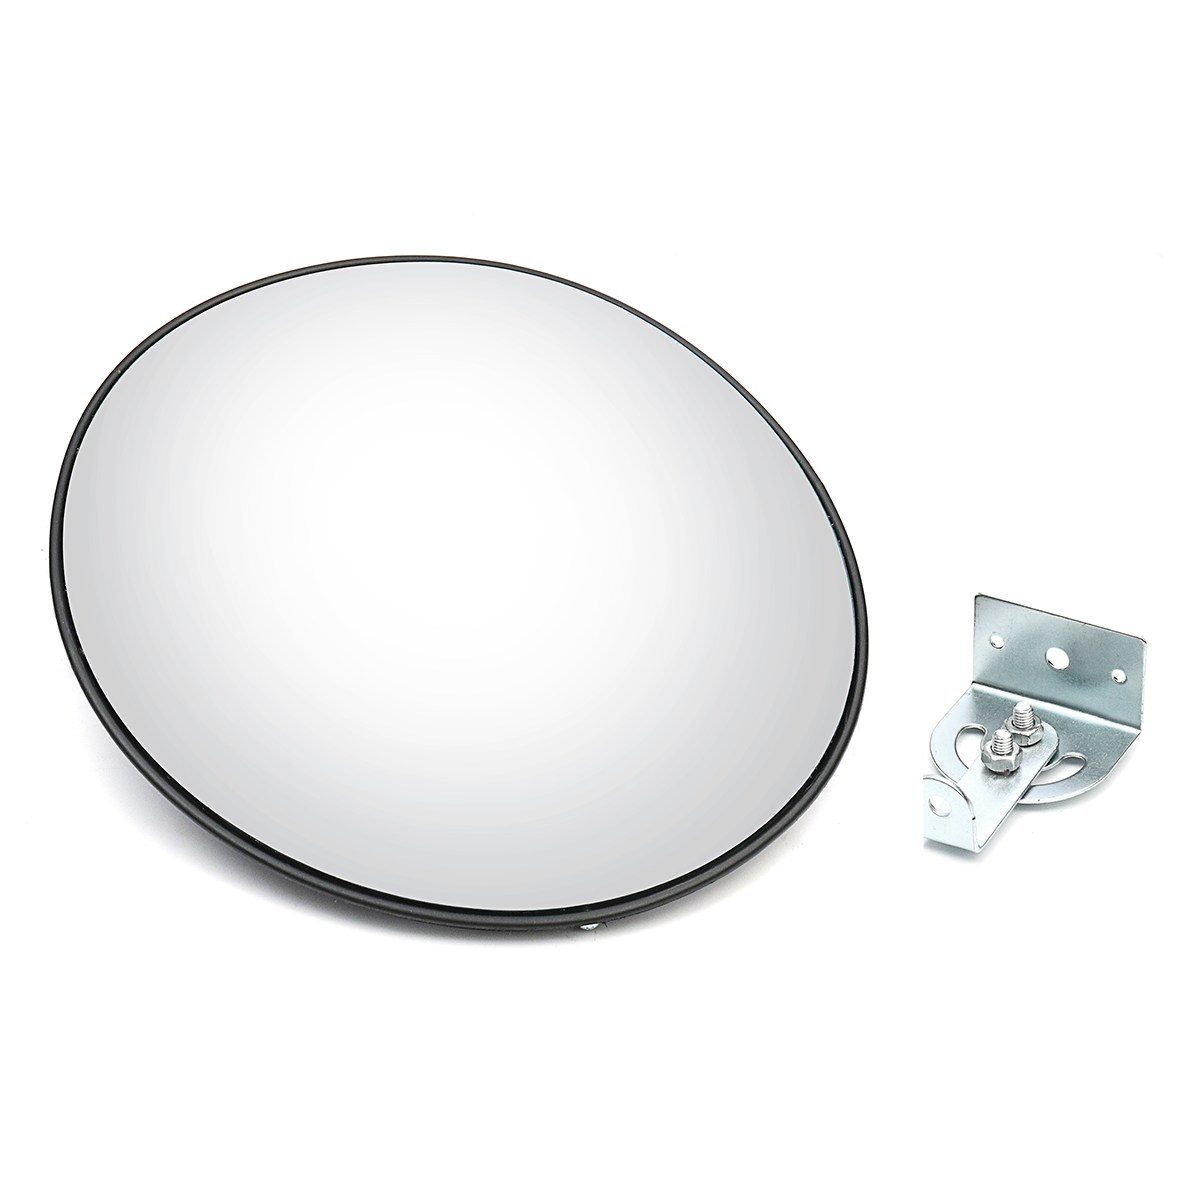 NEW Safurance 30cm Wide Angle Curved Convex Security Road Mirror For Indoor Burglar Traffic Signal Roadway SafetyNEW Safurance 30cm Wide Angle Curved Convex Security Road Mirror For Indoor Burglar Traffic Signal Roadway Safety